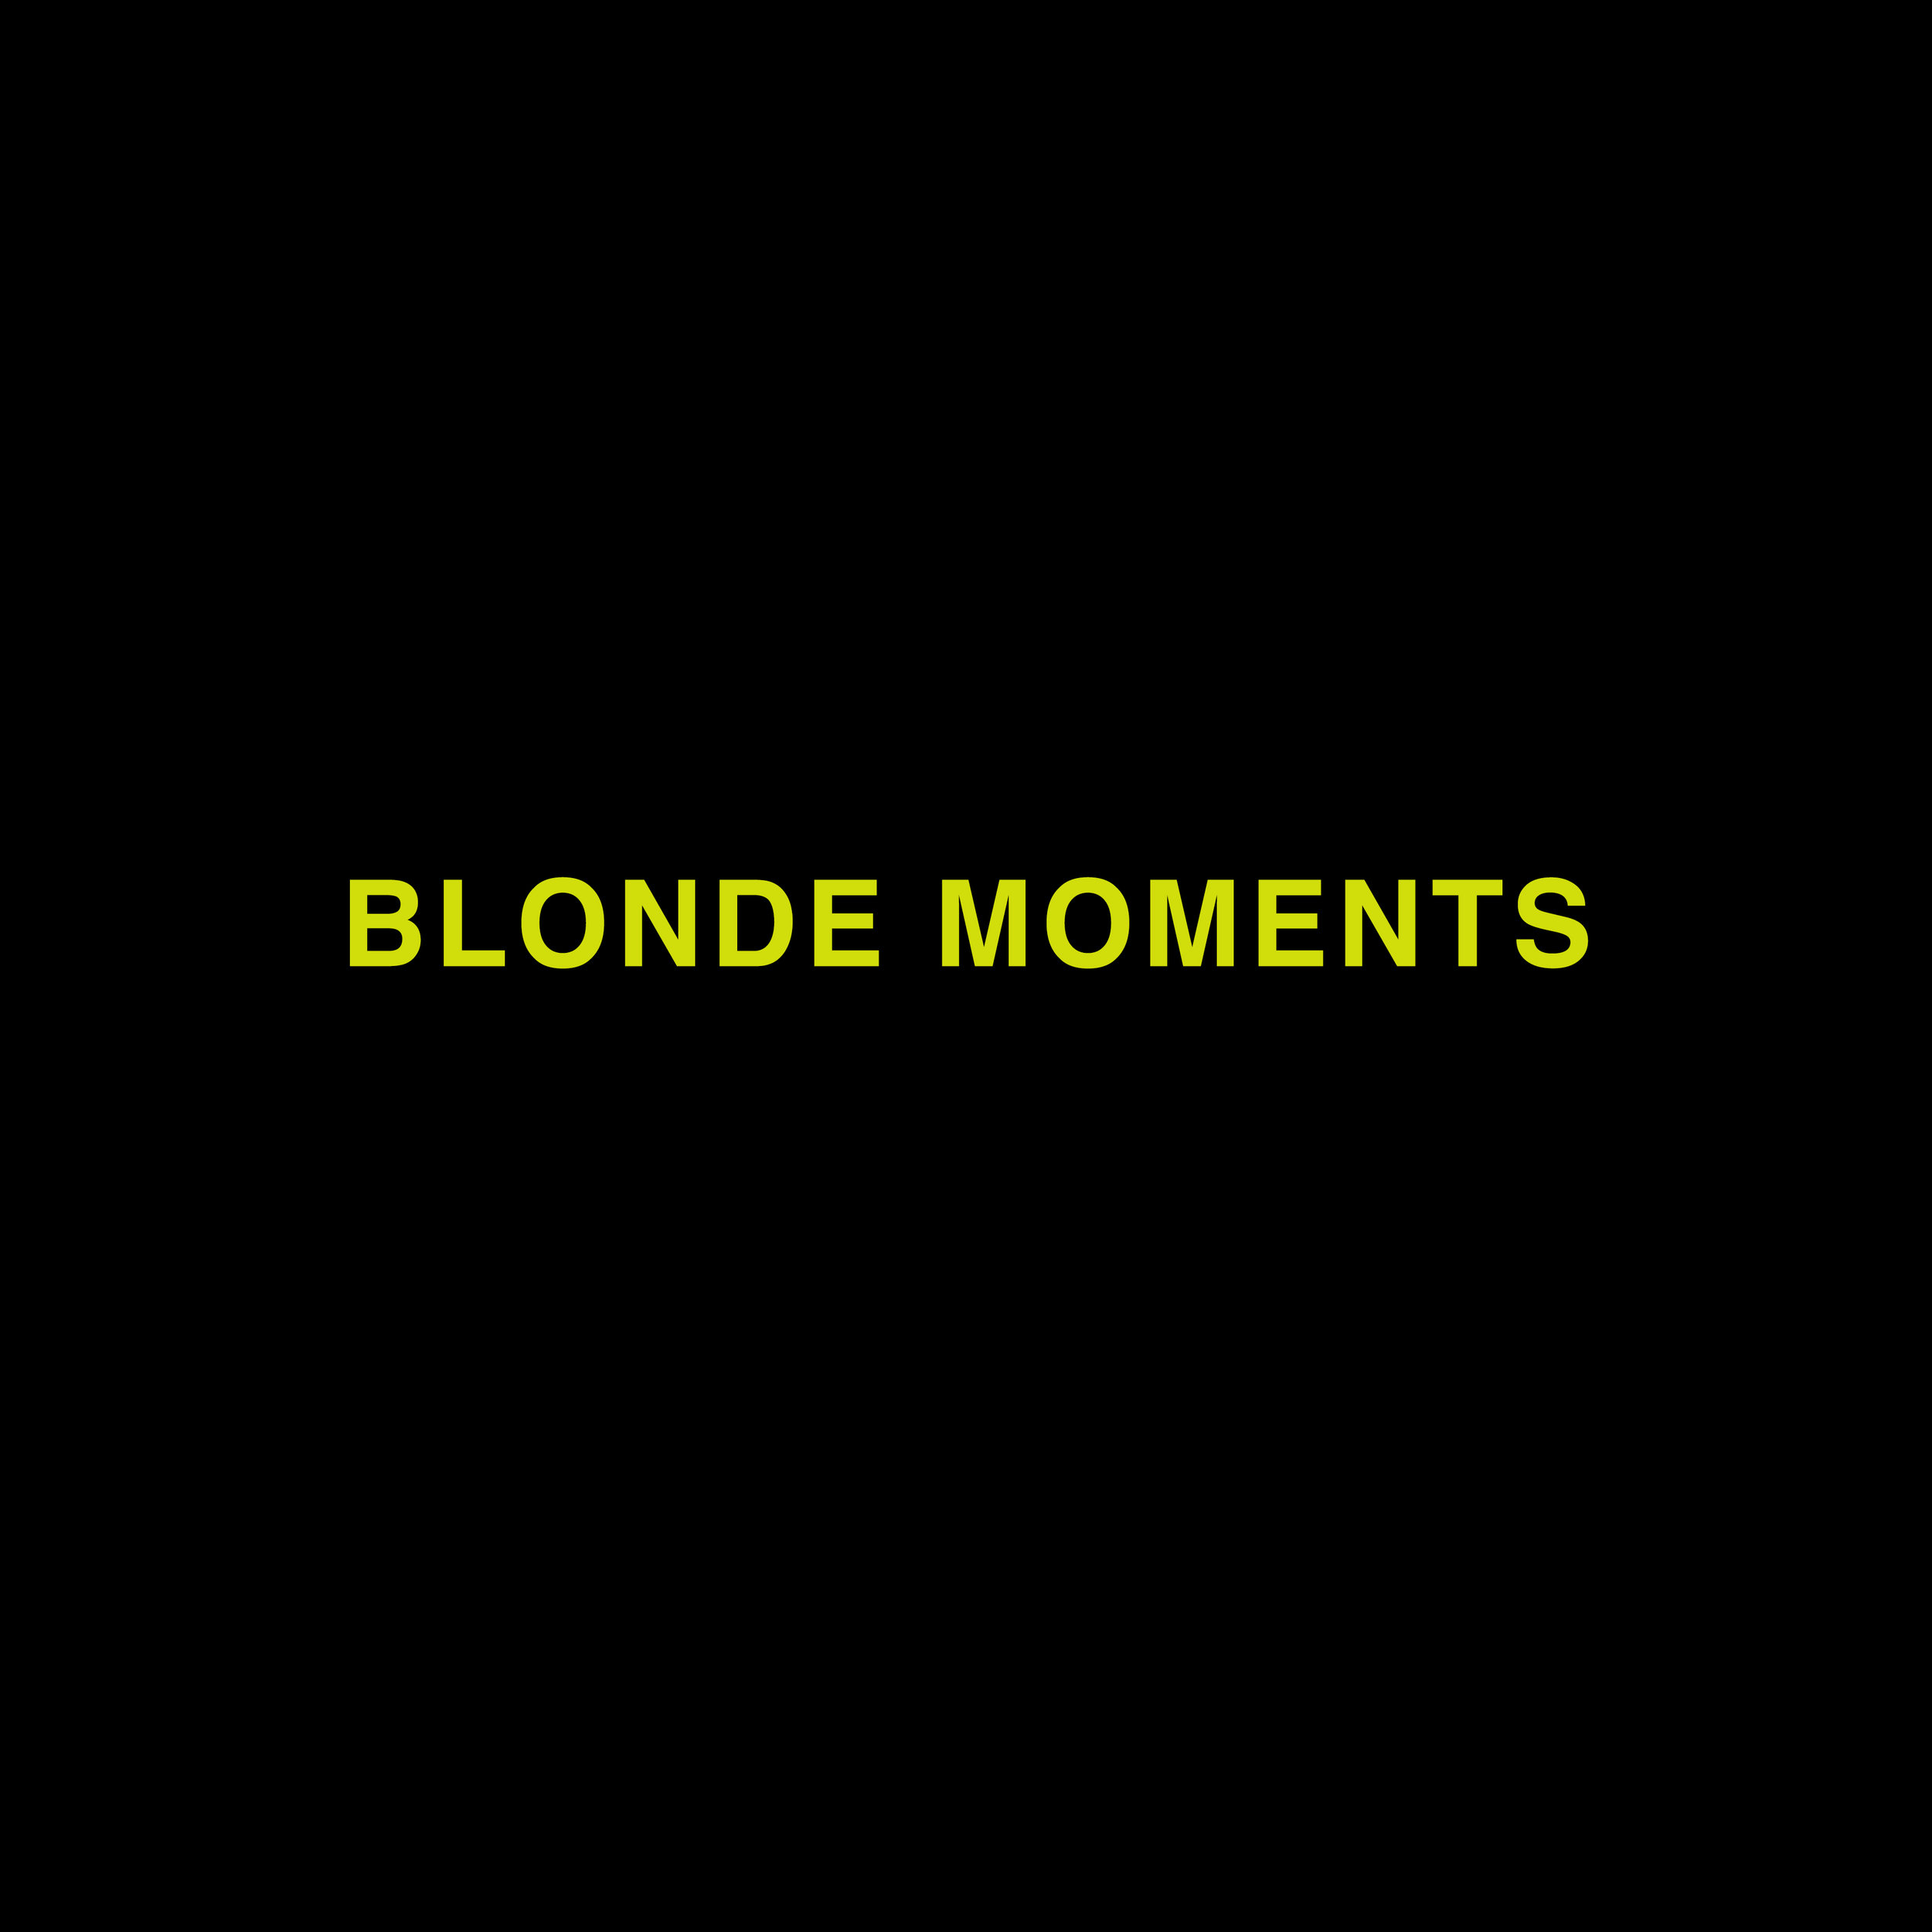 BLONDE MOMENTS - PRODUCER